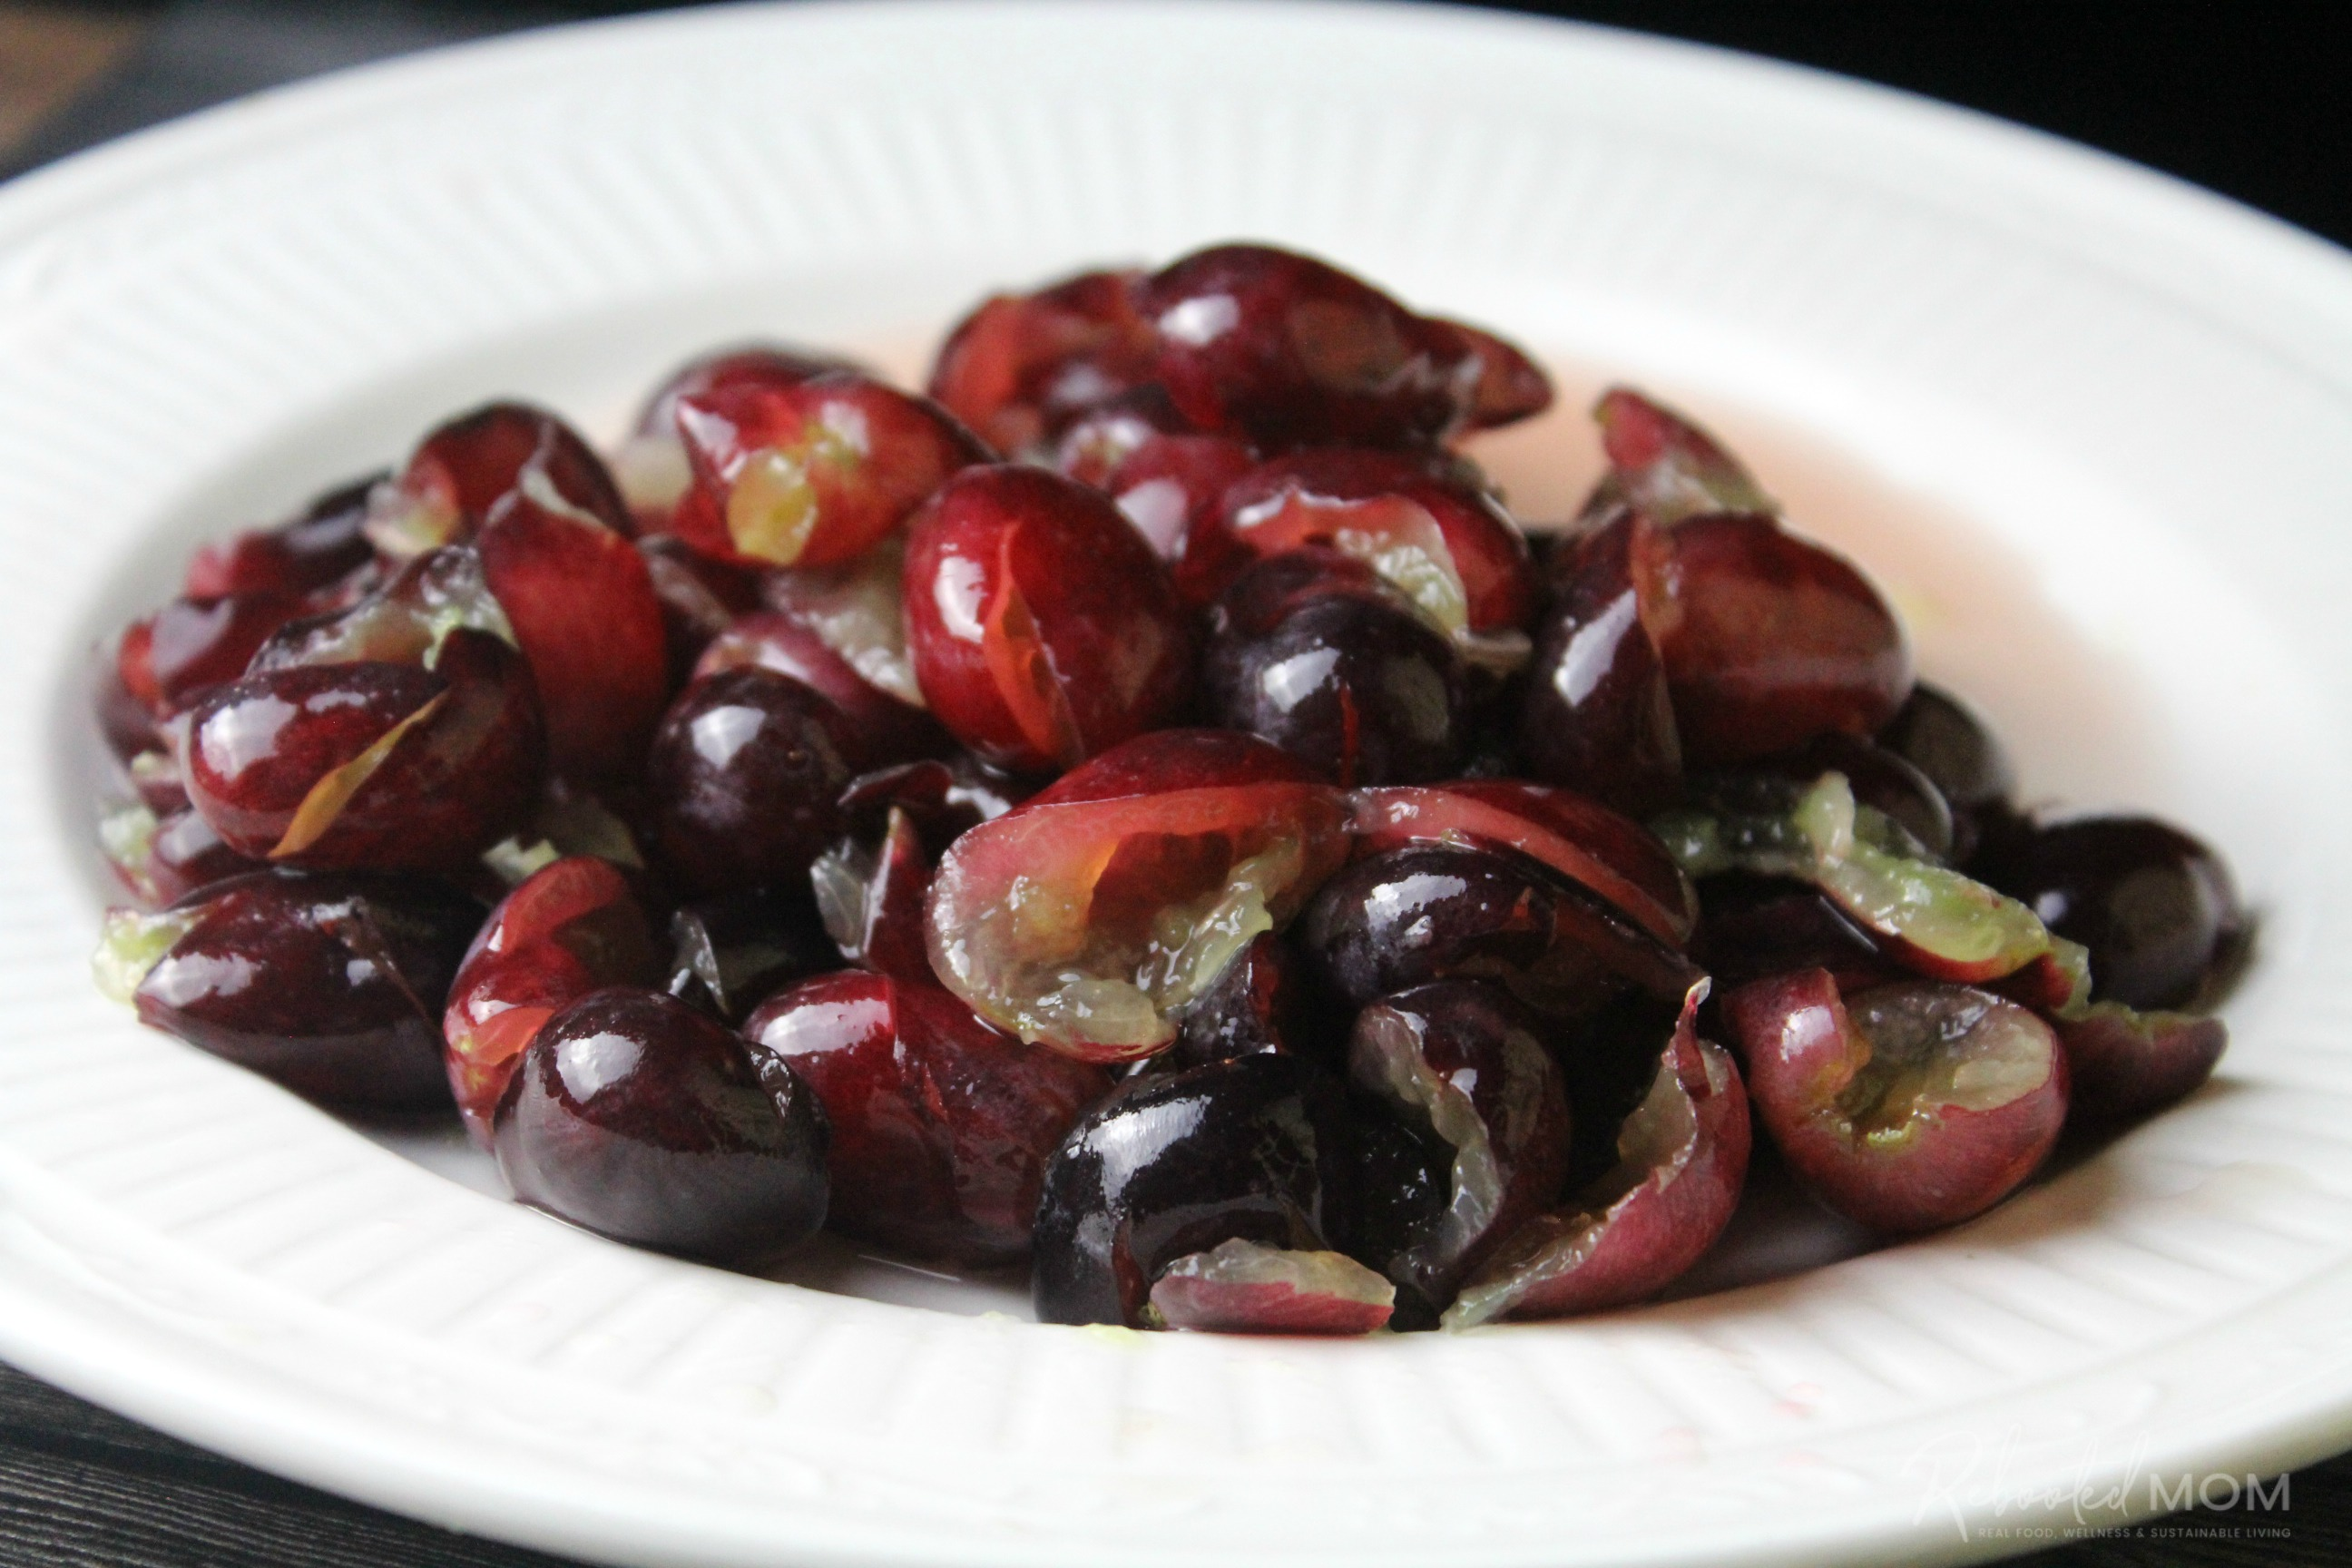 Red Grapes before being added to flour and water